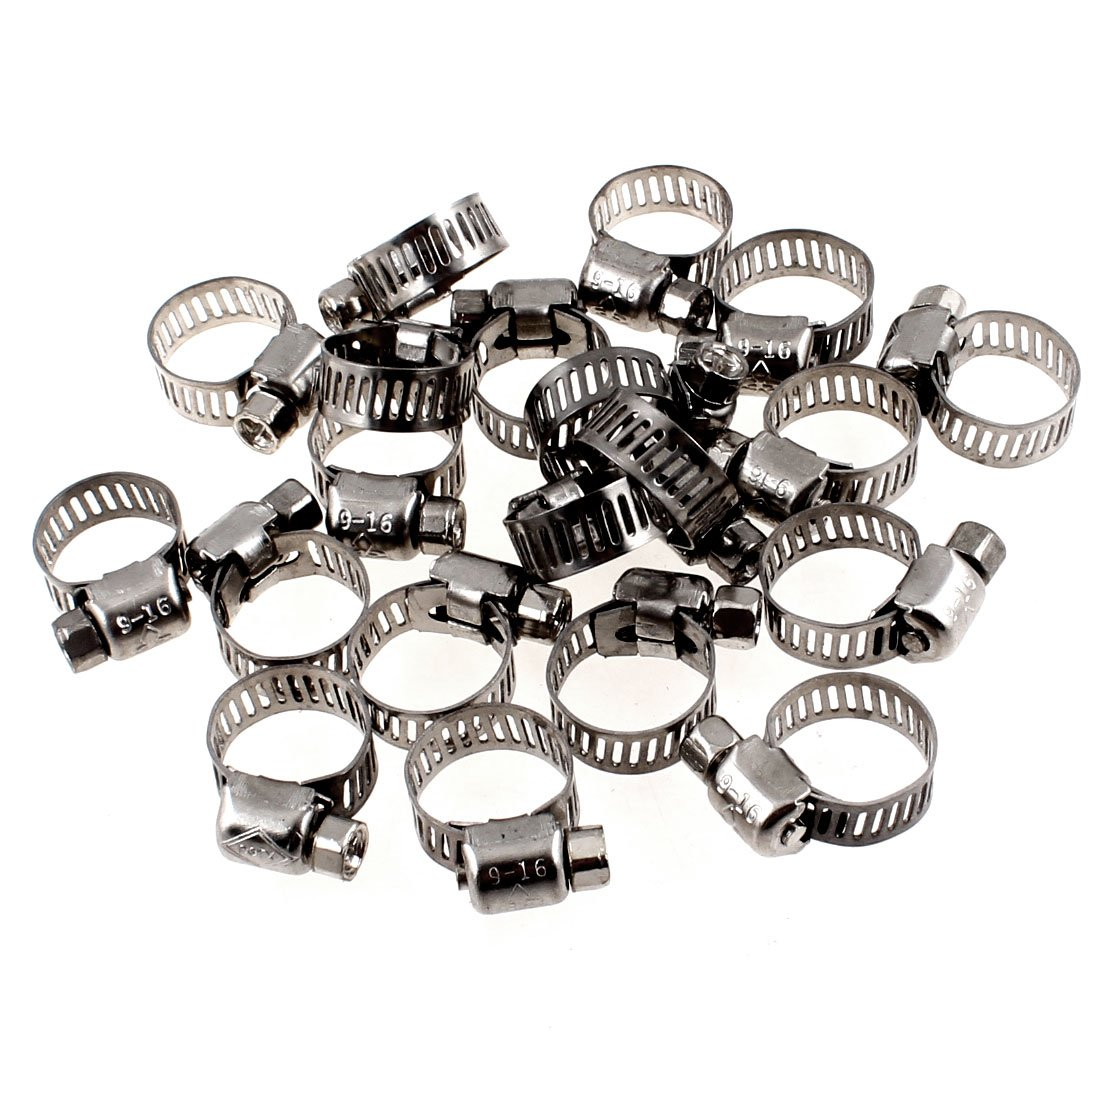 Uxcell a13040300ux0757 Adjustable Stainless Steel Worm Gear Hose Clamps (20 Piece), 9mm-16mm Uxcell (UXCE9)